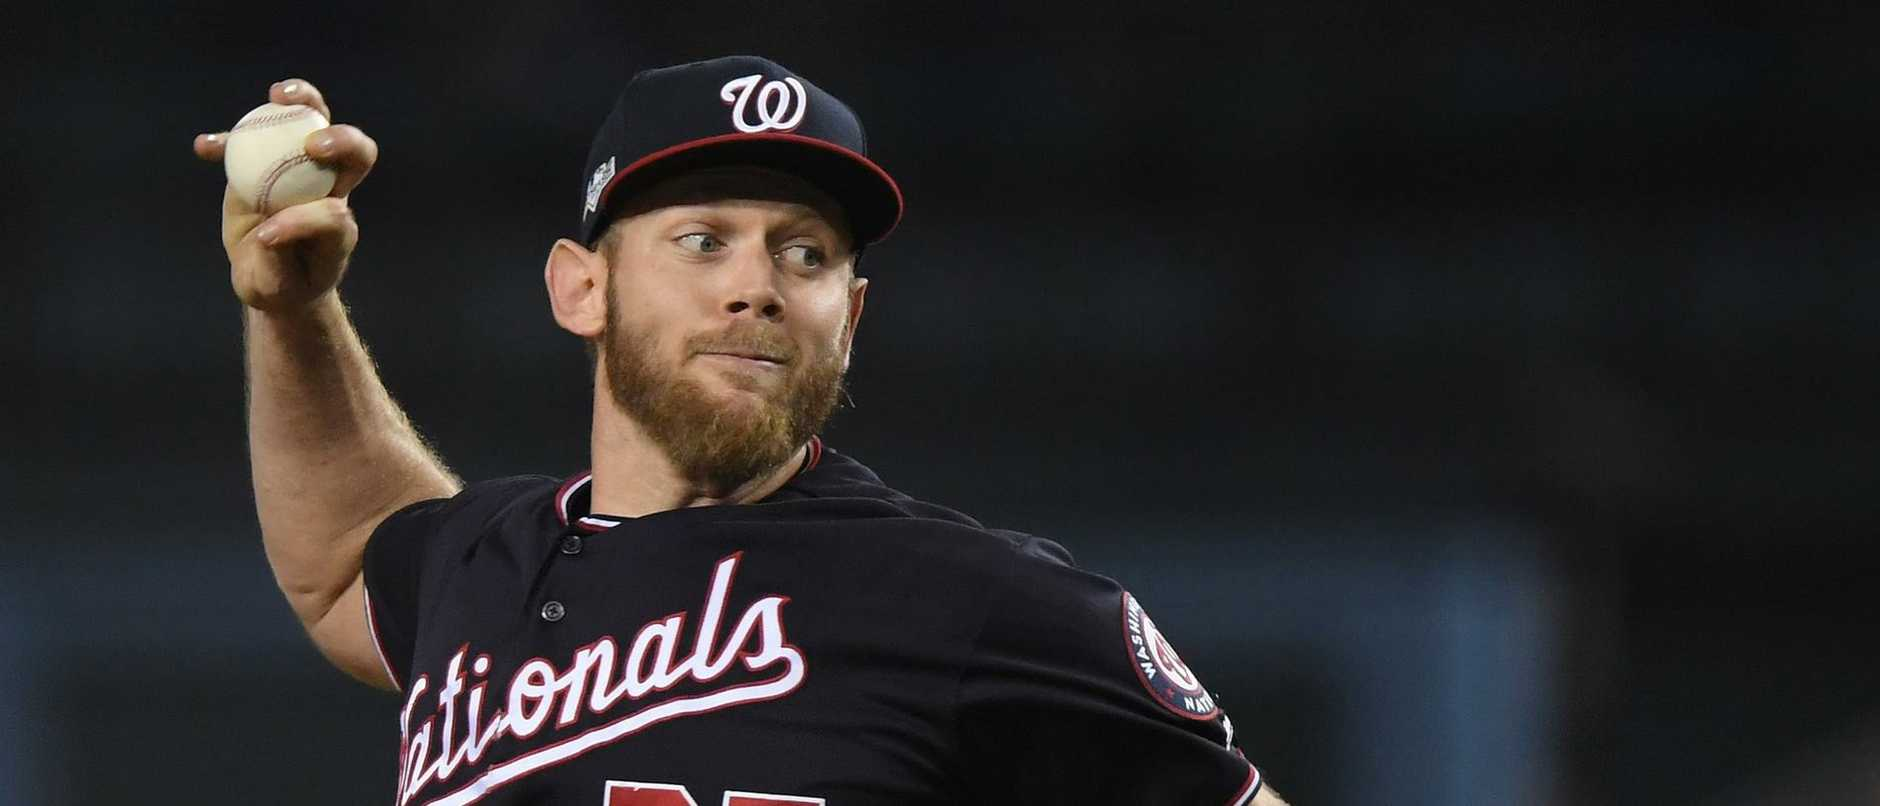 Stephen Strasburg has money to burn.